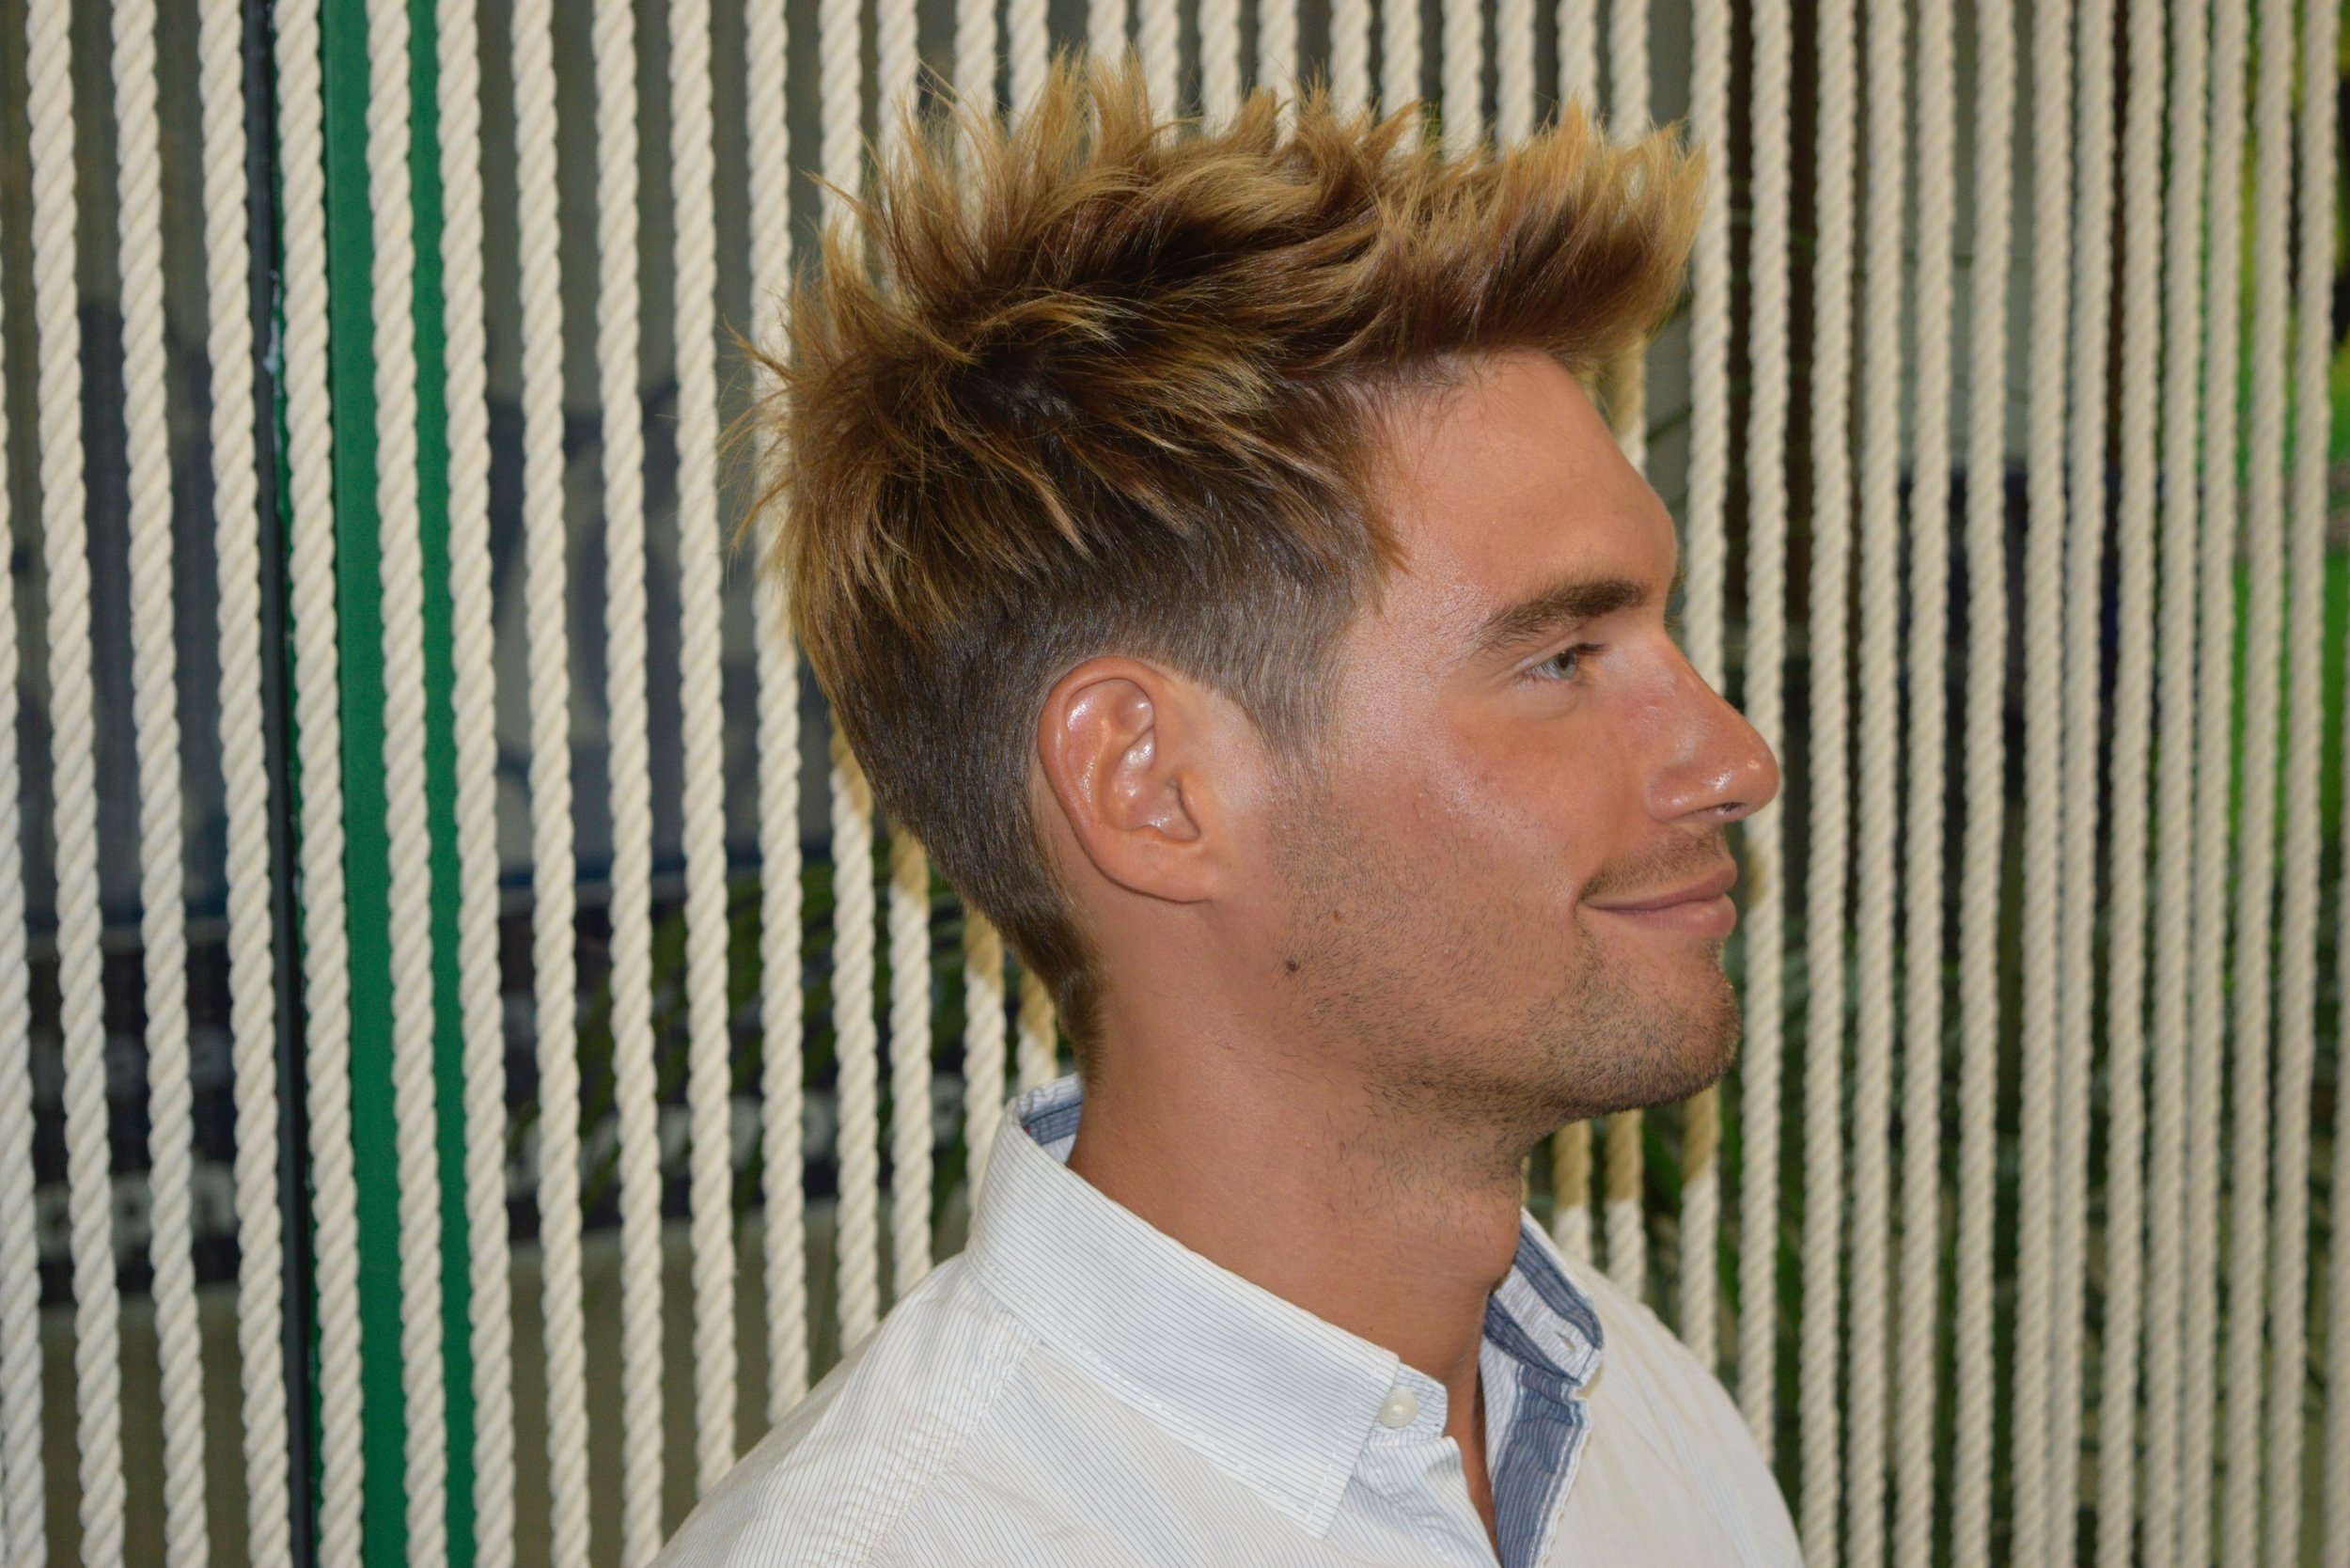 Colour & Haircut -tailored hairstyle, using only scissors,keeping sharp edges with texture length on top.